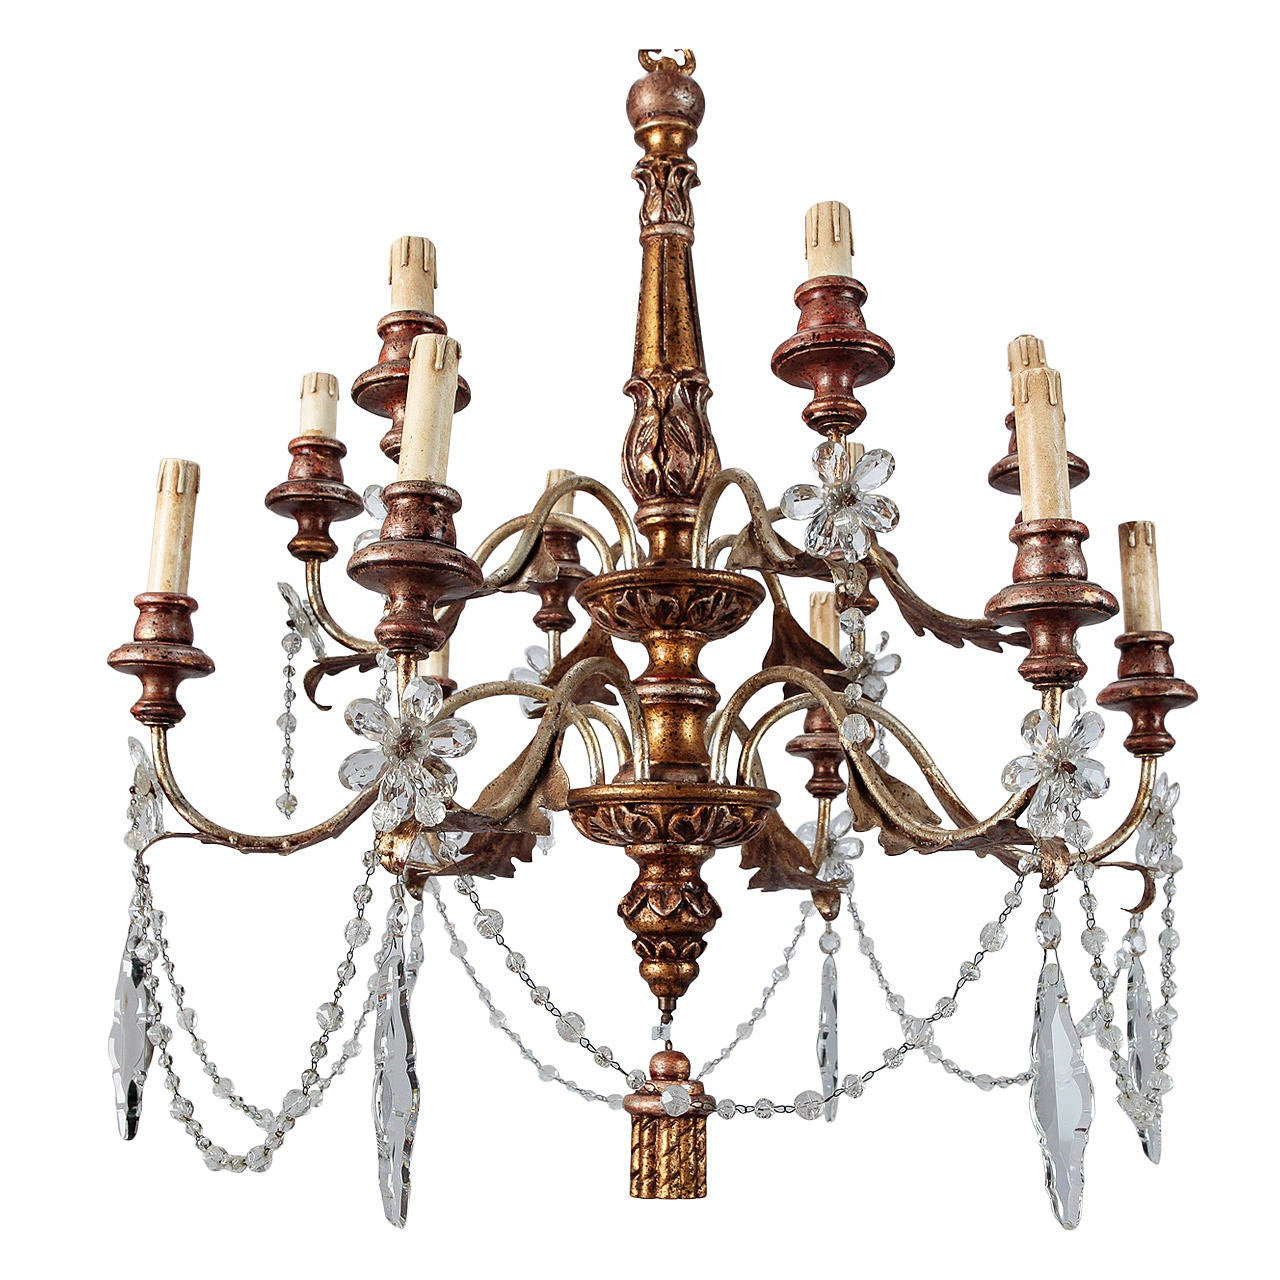 19th Century French Twelve-Light Gild Wood and Crystal Chandelier